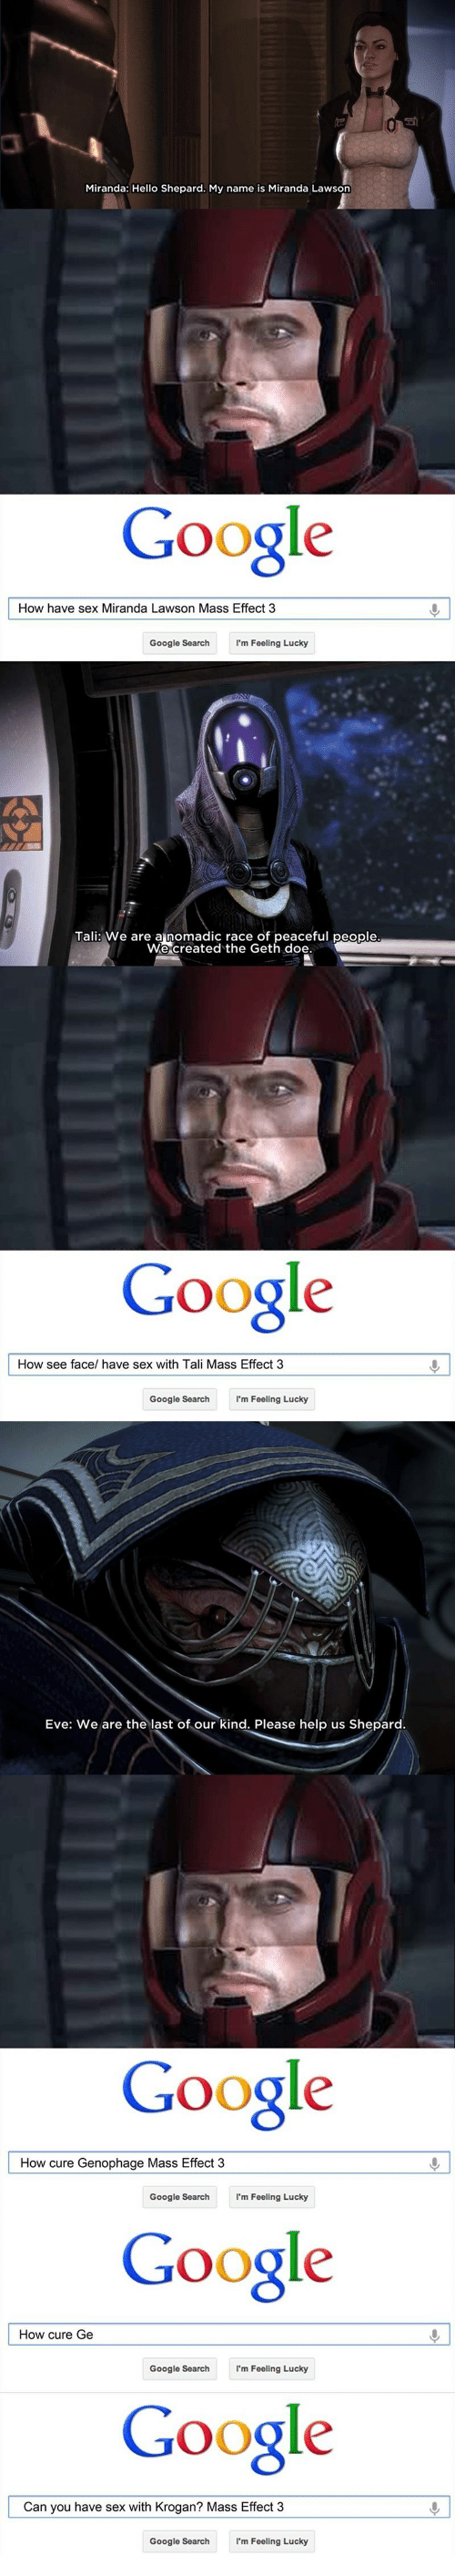 miranda lawson: Miranda: Hello Shepard. My name is Miranda Lawson  Google  How have sex Miranda Lawson Mass Effect 3  Google SearchI'm Feeling Lucky  Tali: We are ainomadic race of peaceful people  We created the Geth  Google  How see face/ have sex with Tali Mass Effect 3  Google Searchm Foeling Lucky  Eve: We are the last  Please help us Shepard.  Google  Google  Google  How cure Genophage Mass Effect 3  Google Search  I'm Feeling Lucky  How cure Ge  Google Searchm Feeling Lucky  Can you have sex with Krogan? Mass Effect 3  Google Search  I'm Feeling Lucky